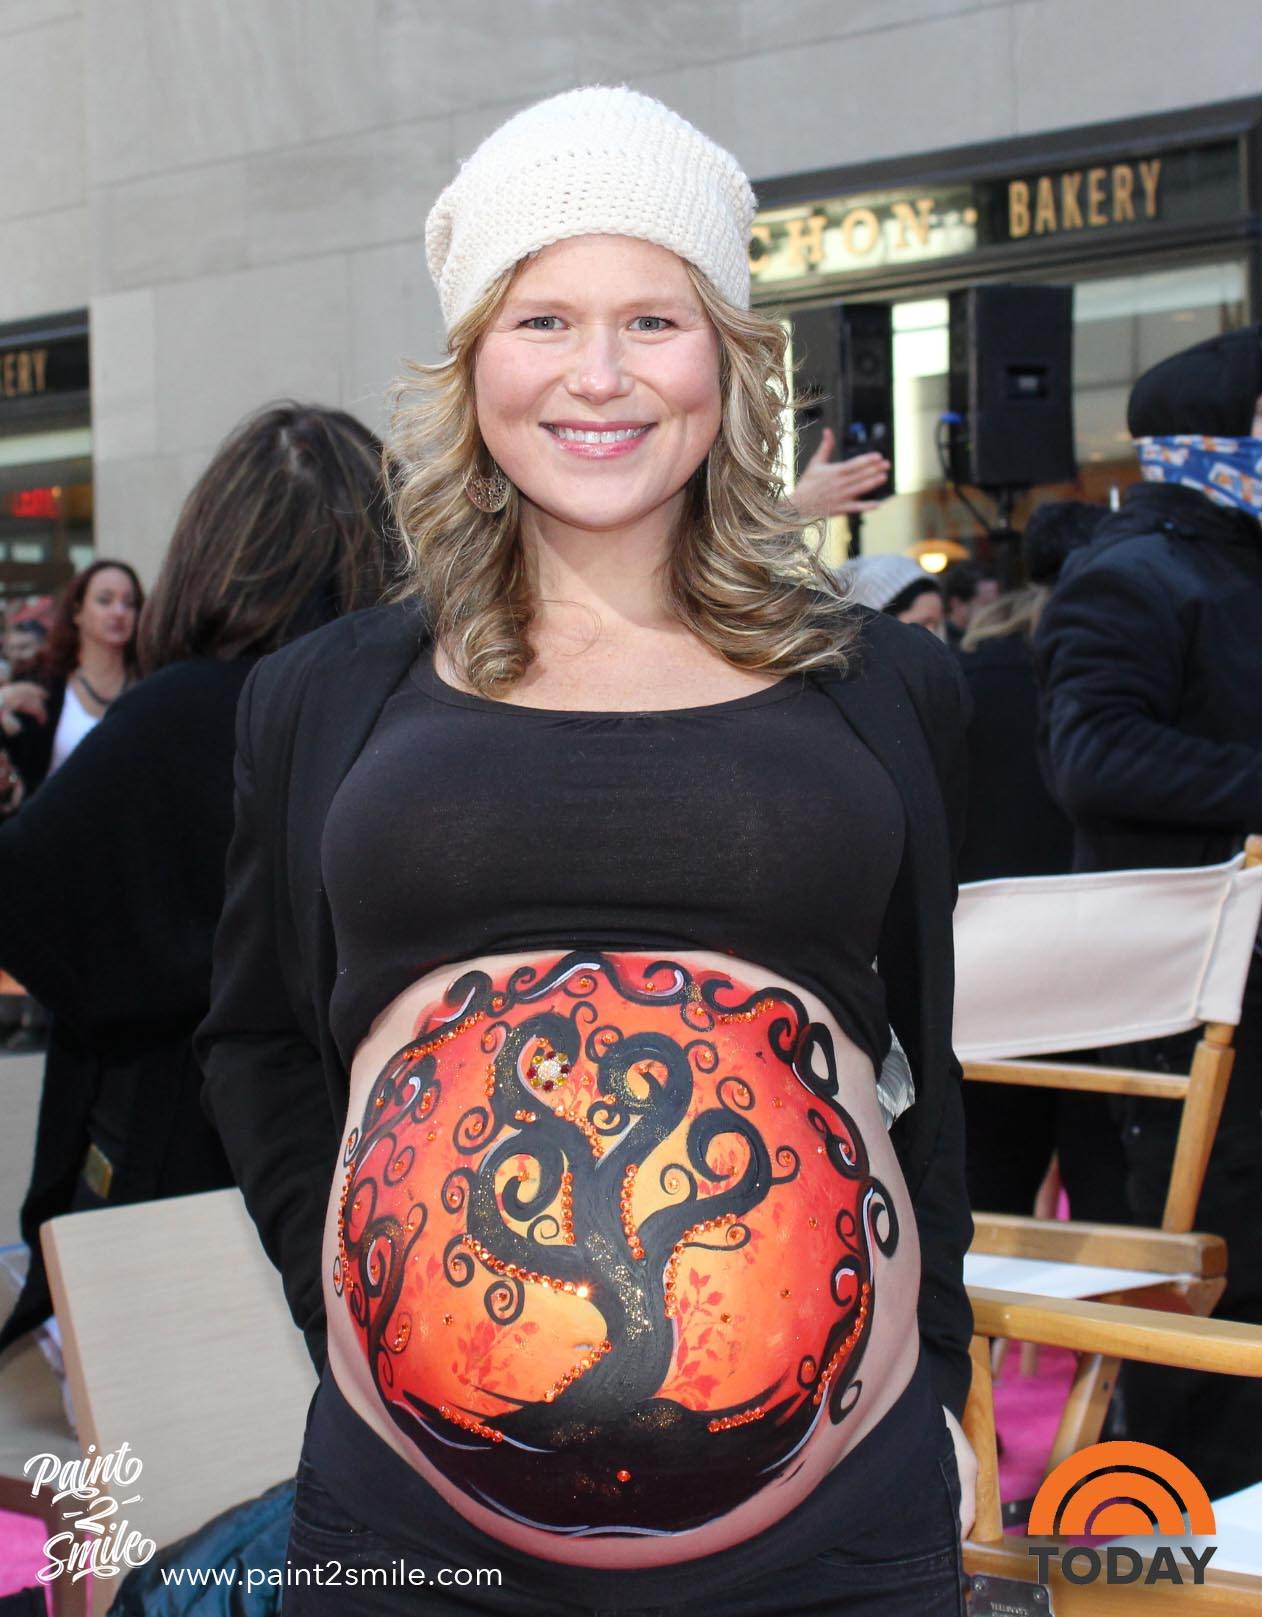 belly painting today show